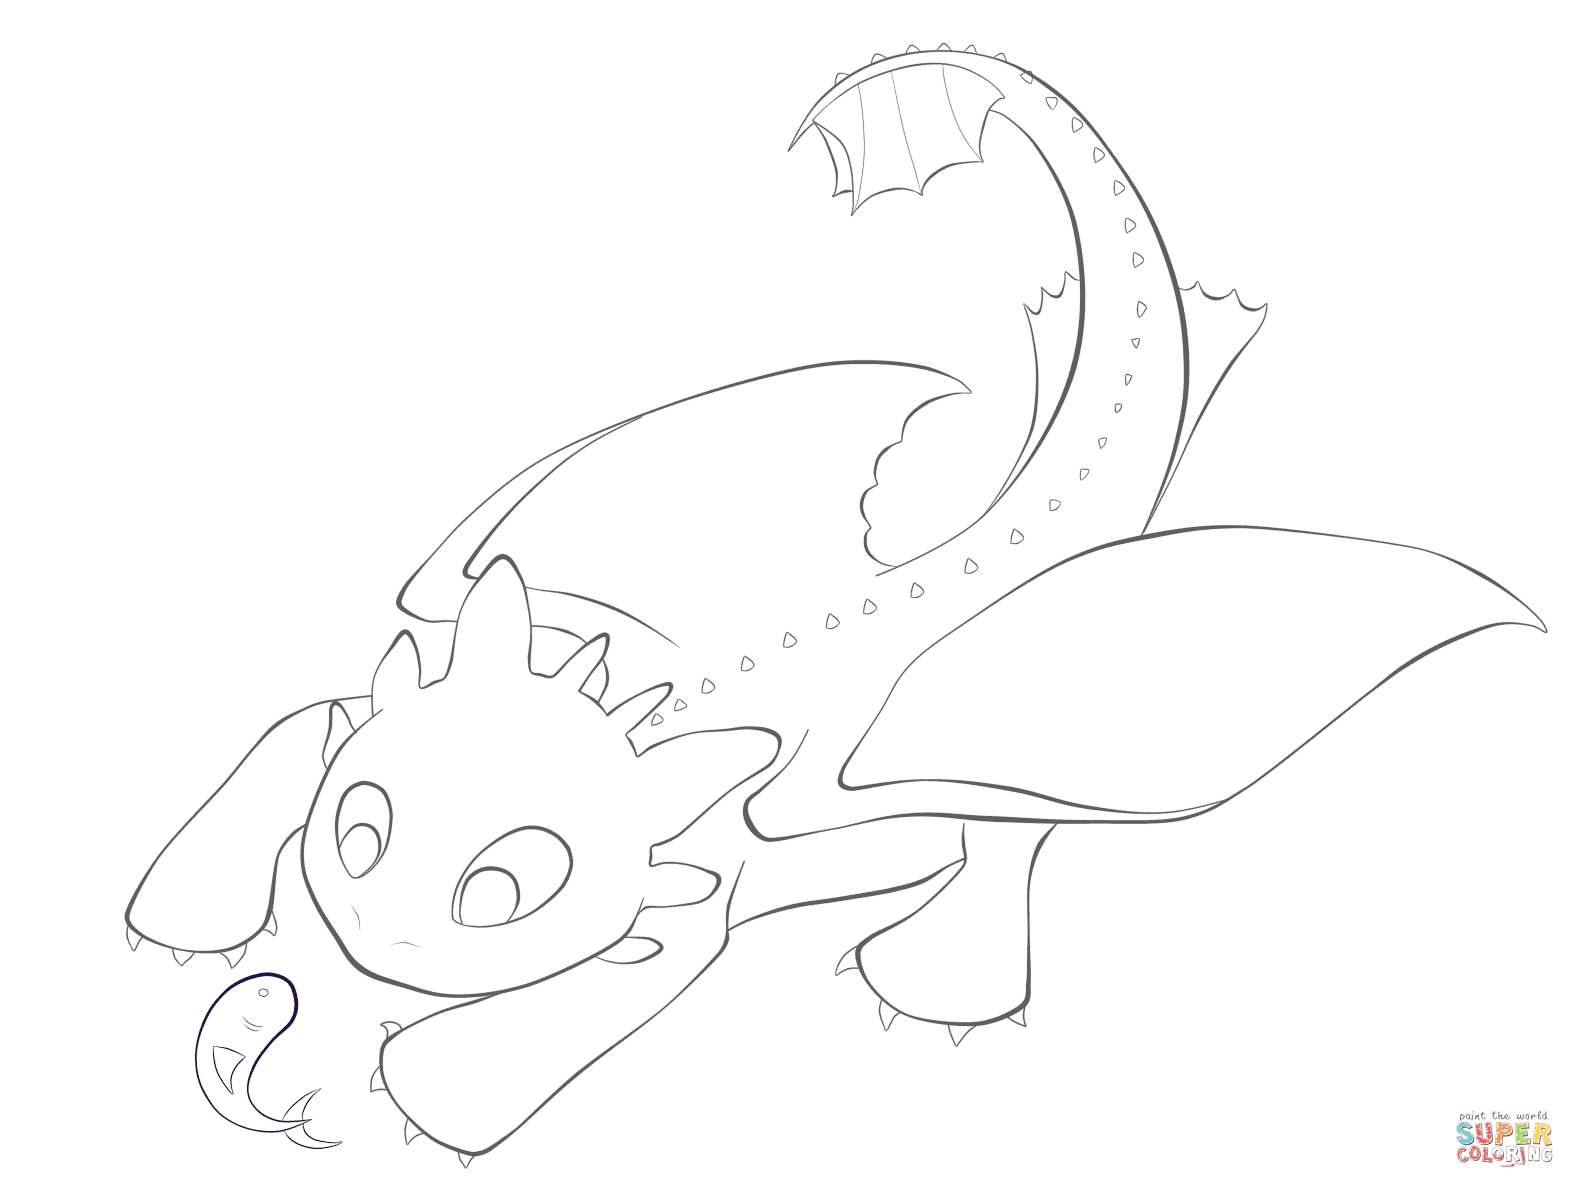 toothless flying drawing at getdrawings | free download